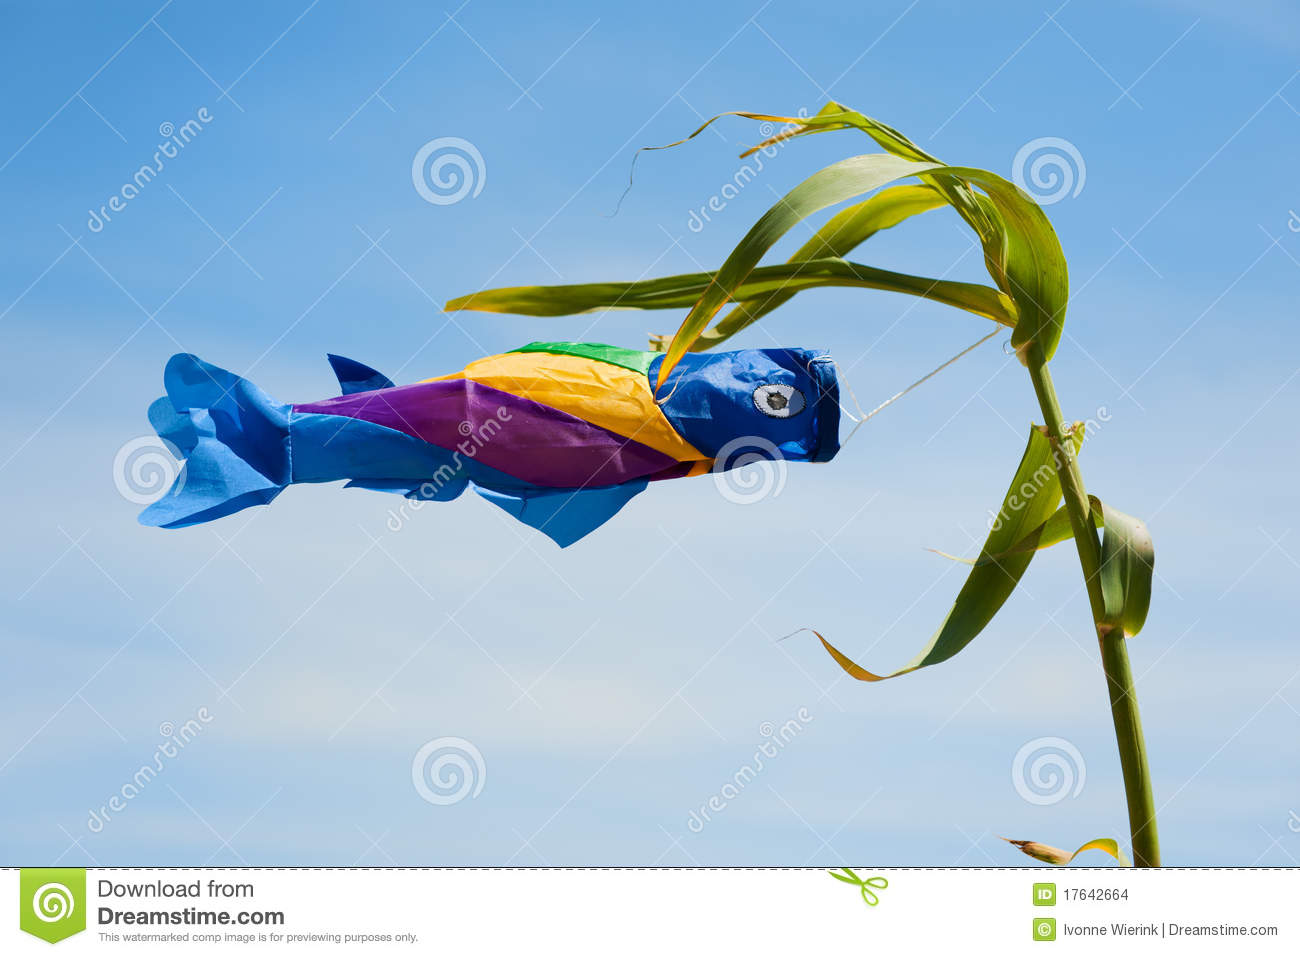 Fish in the wind stock images image 17642664 for Fishing in the wind